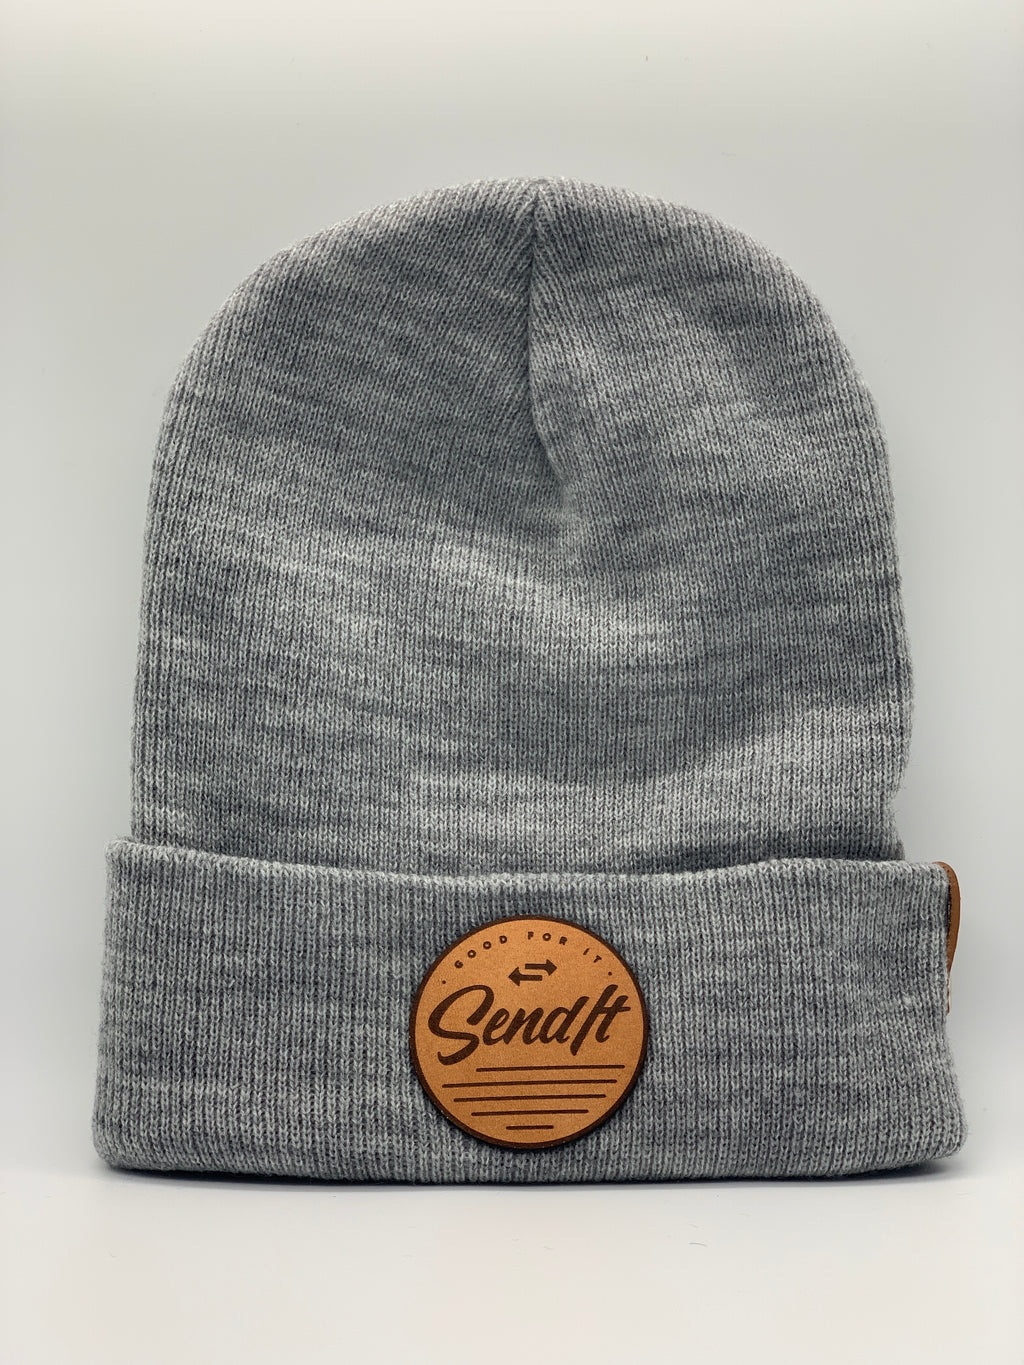 Send It Leather Patch Beanie